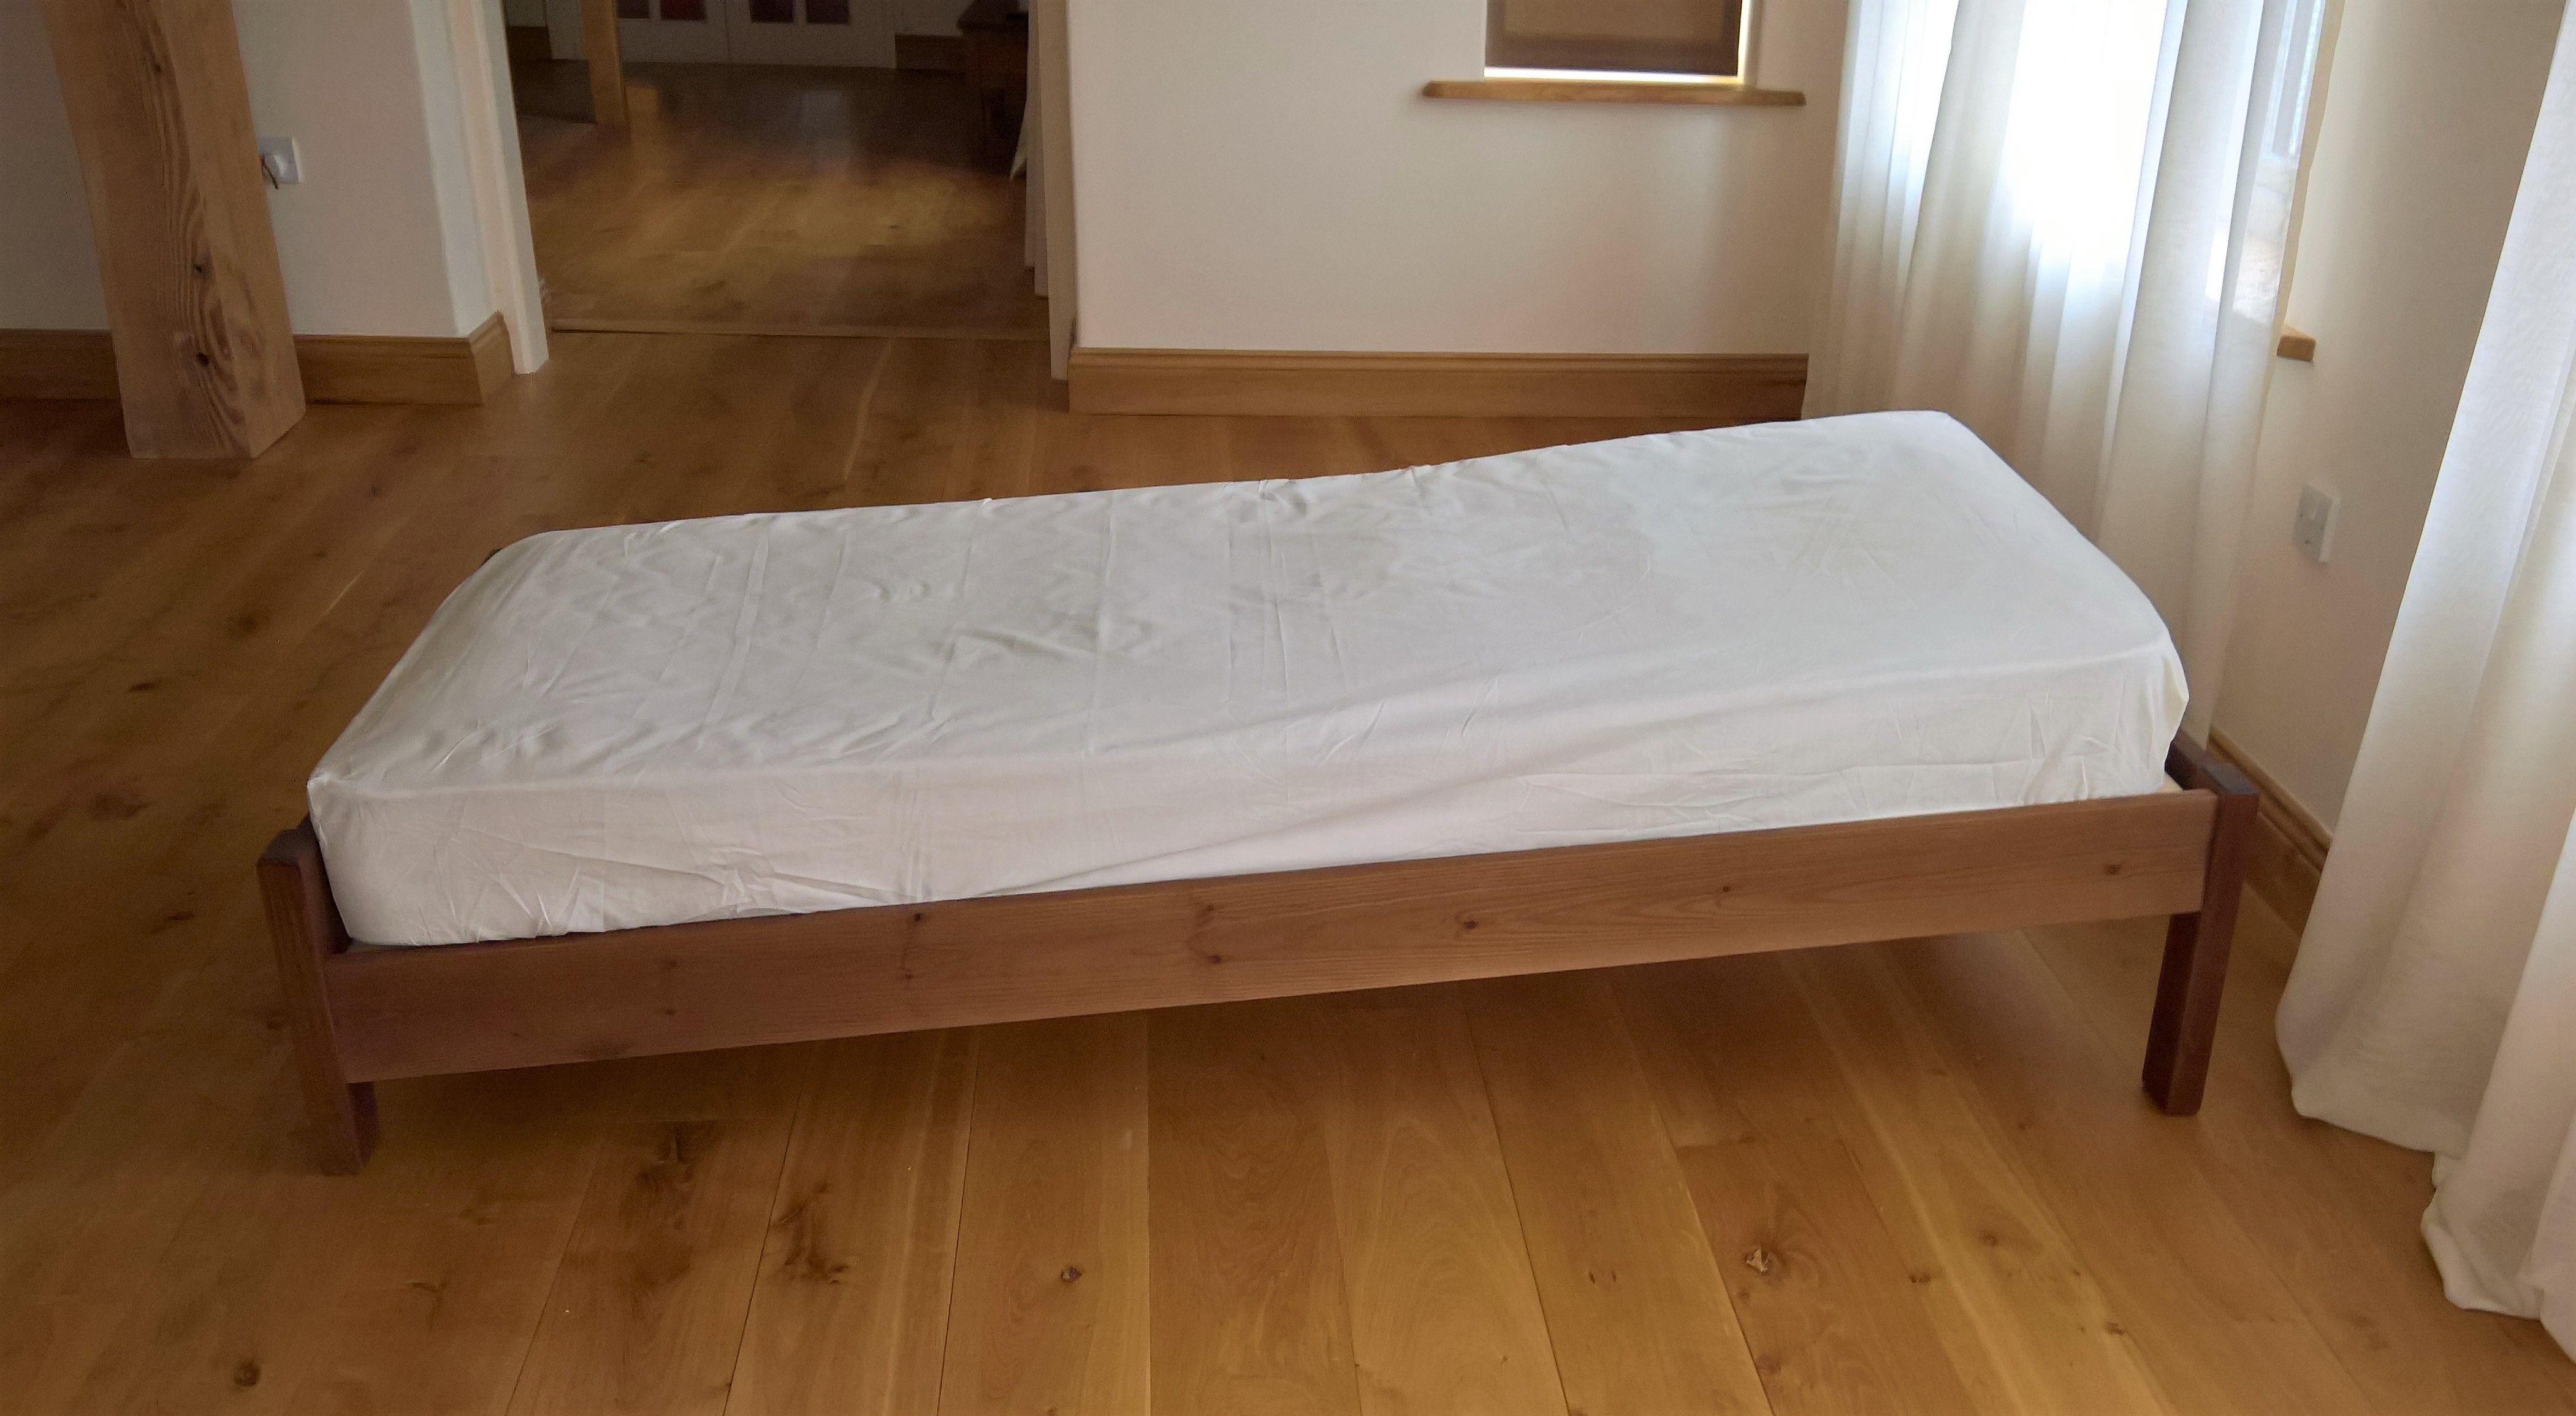 The Test Inclined Bed Feelgood Eco Beds Sloping Bed